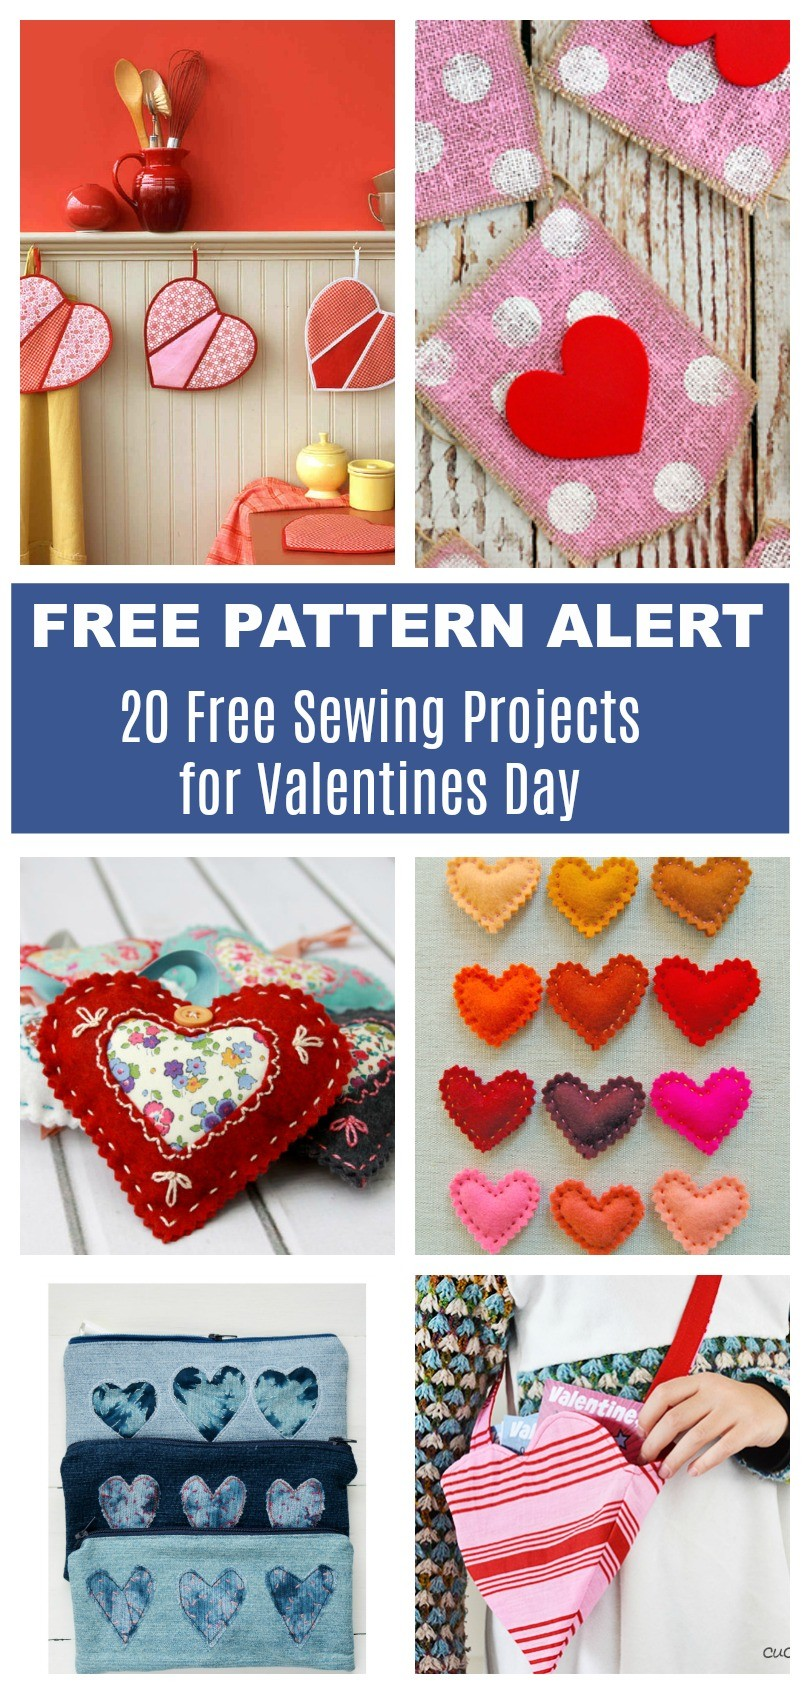 sewing valentine craft ideas free pattern alert 20 free sewing projects for valentines 5397